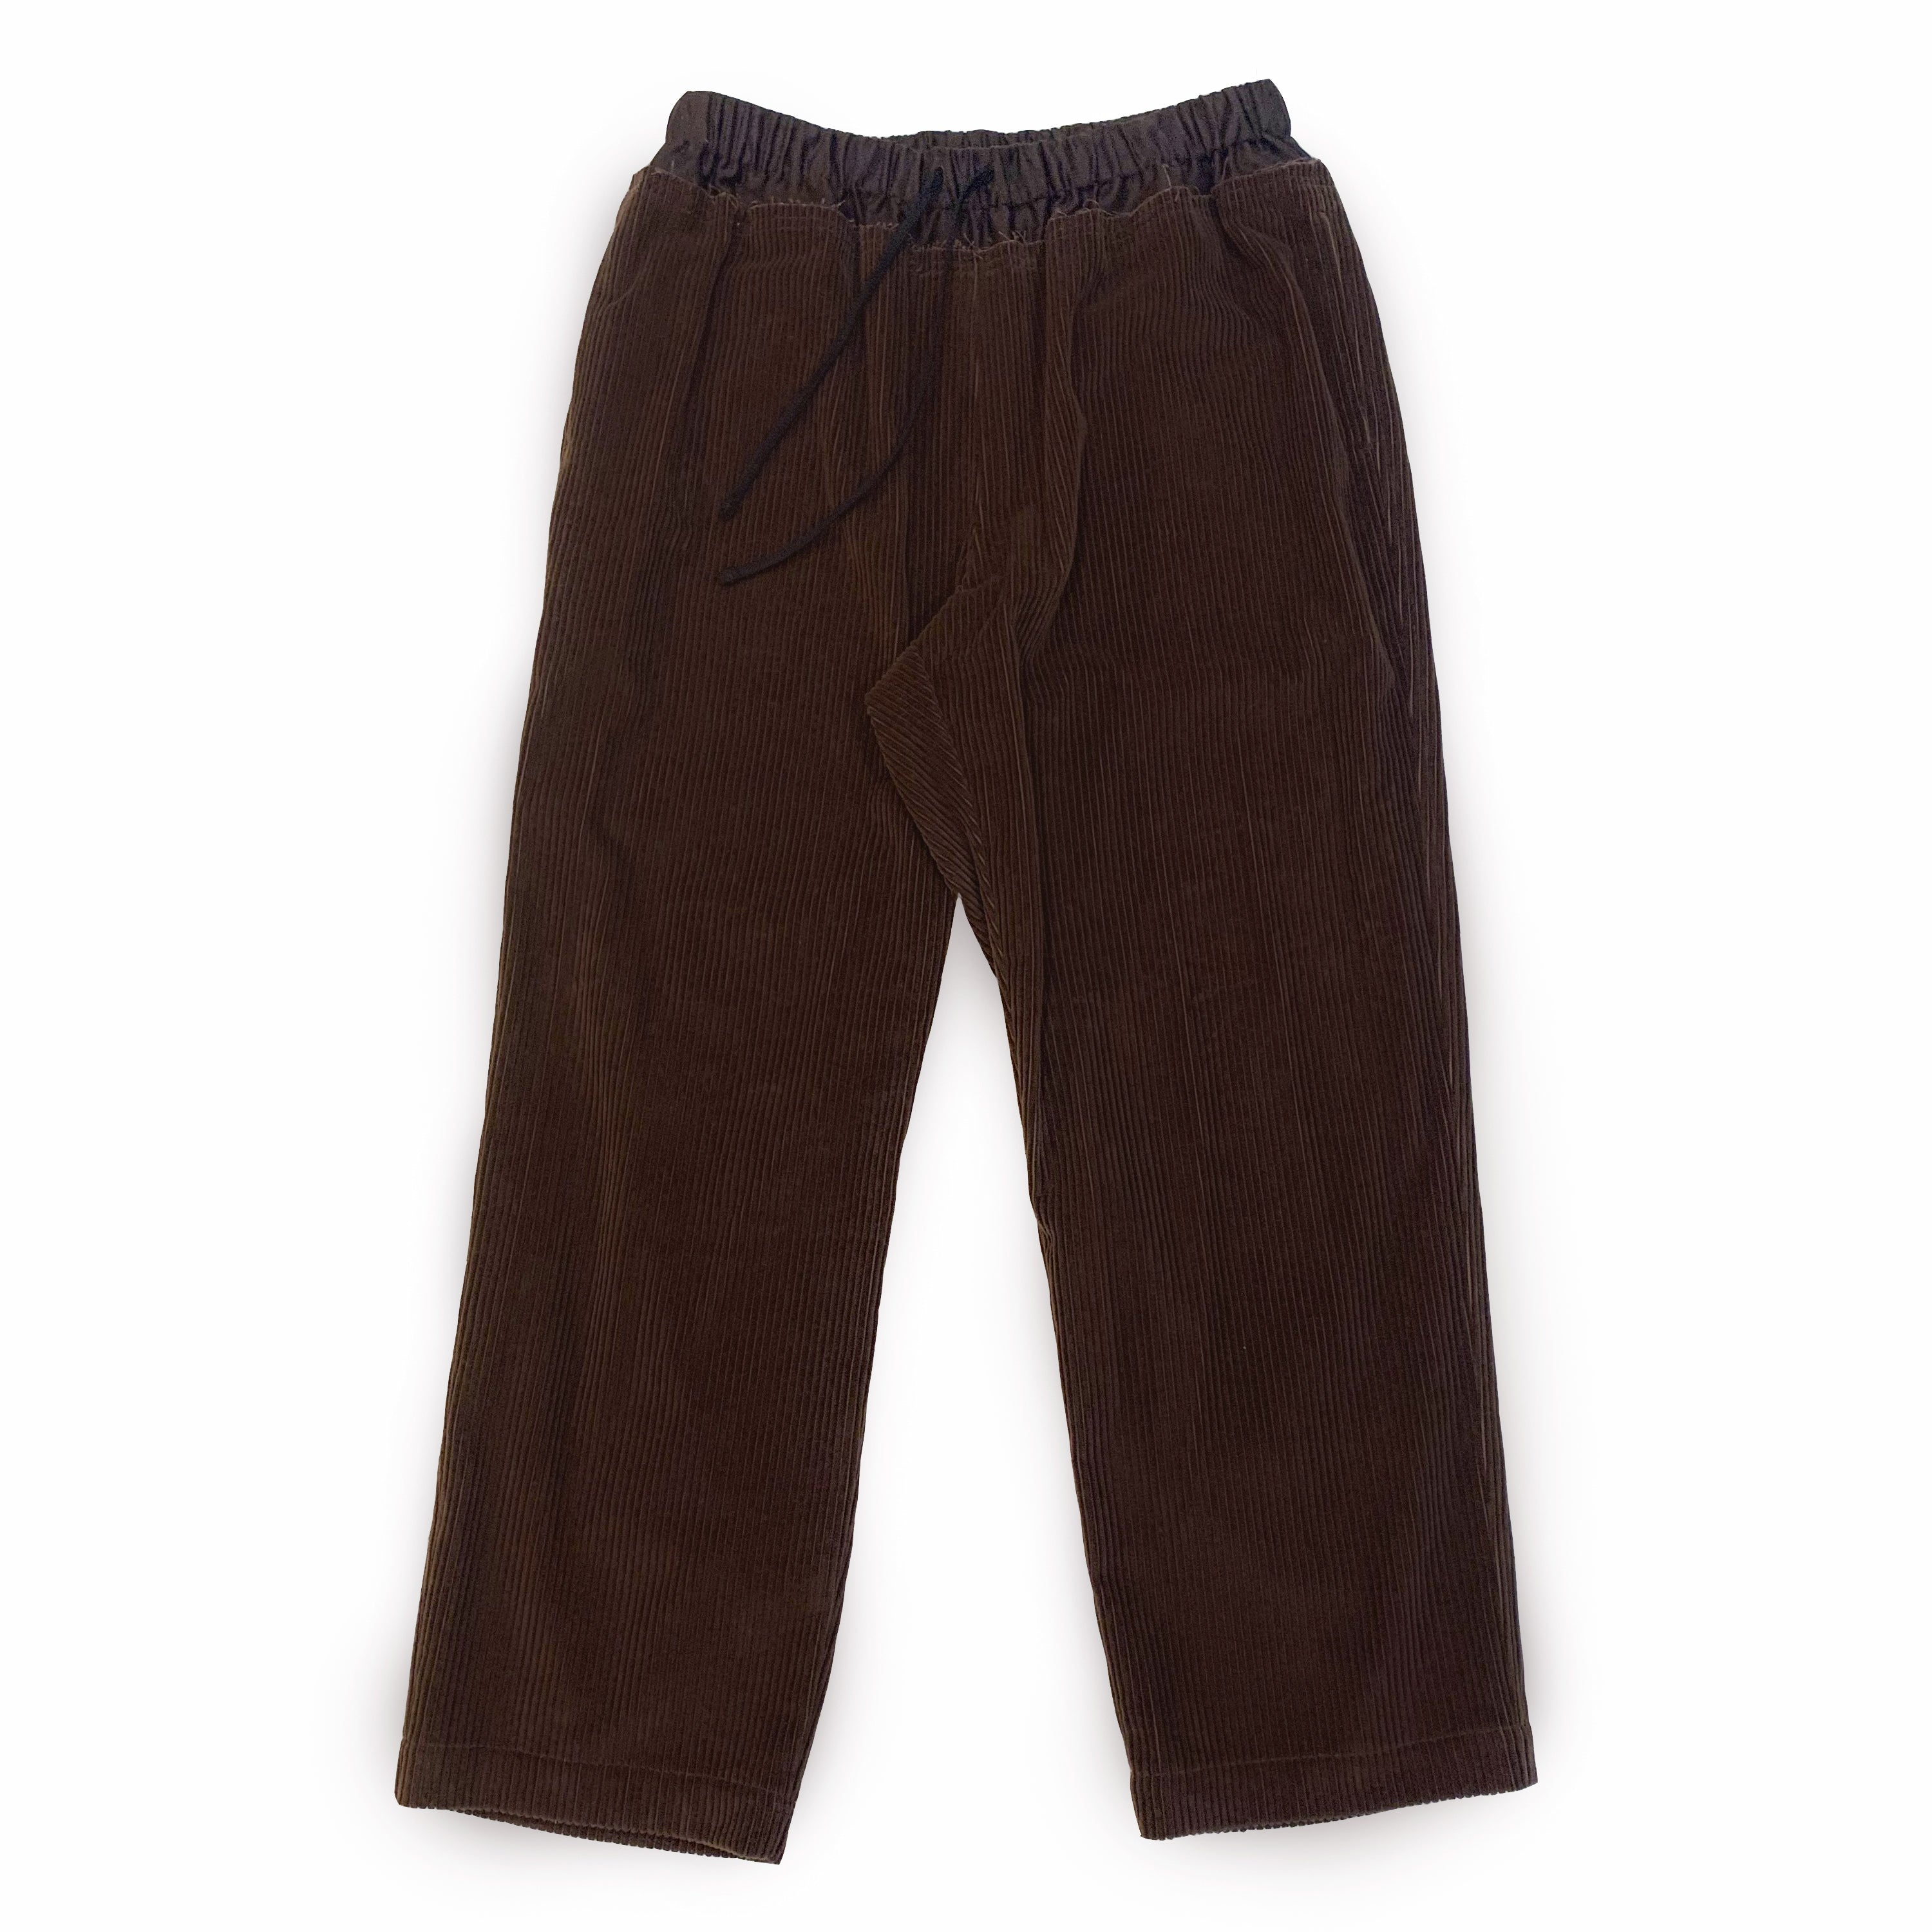 Nest Pant - Brown Corduroy